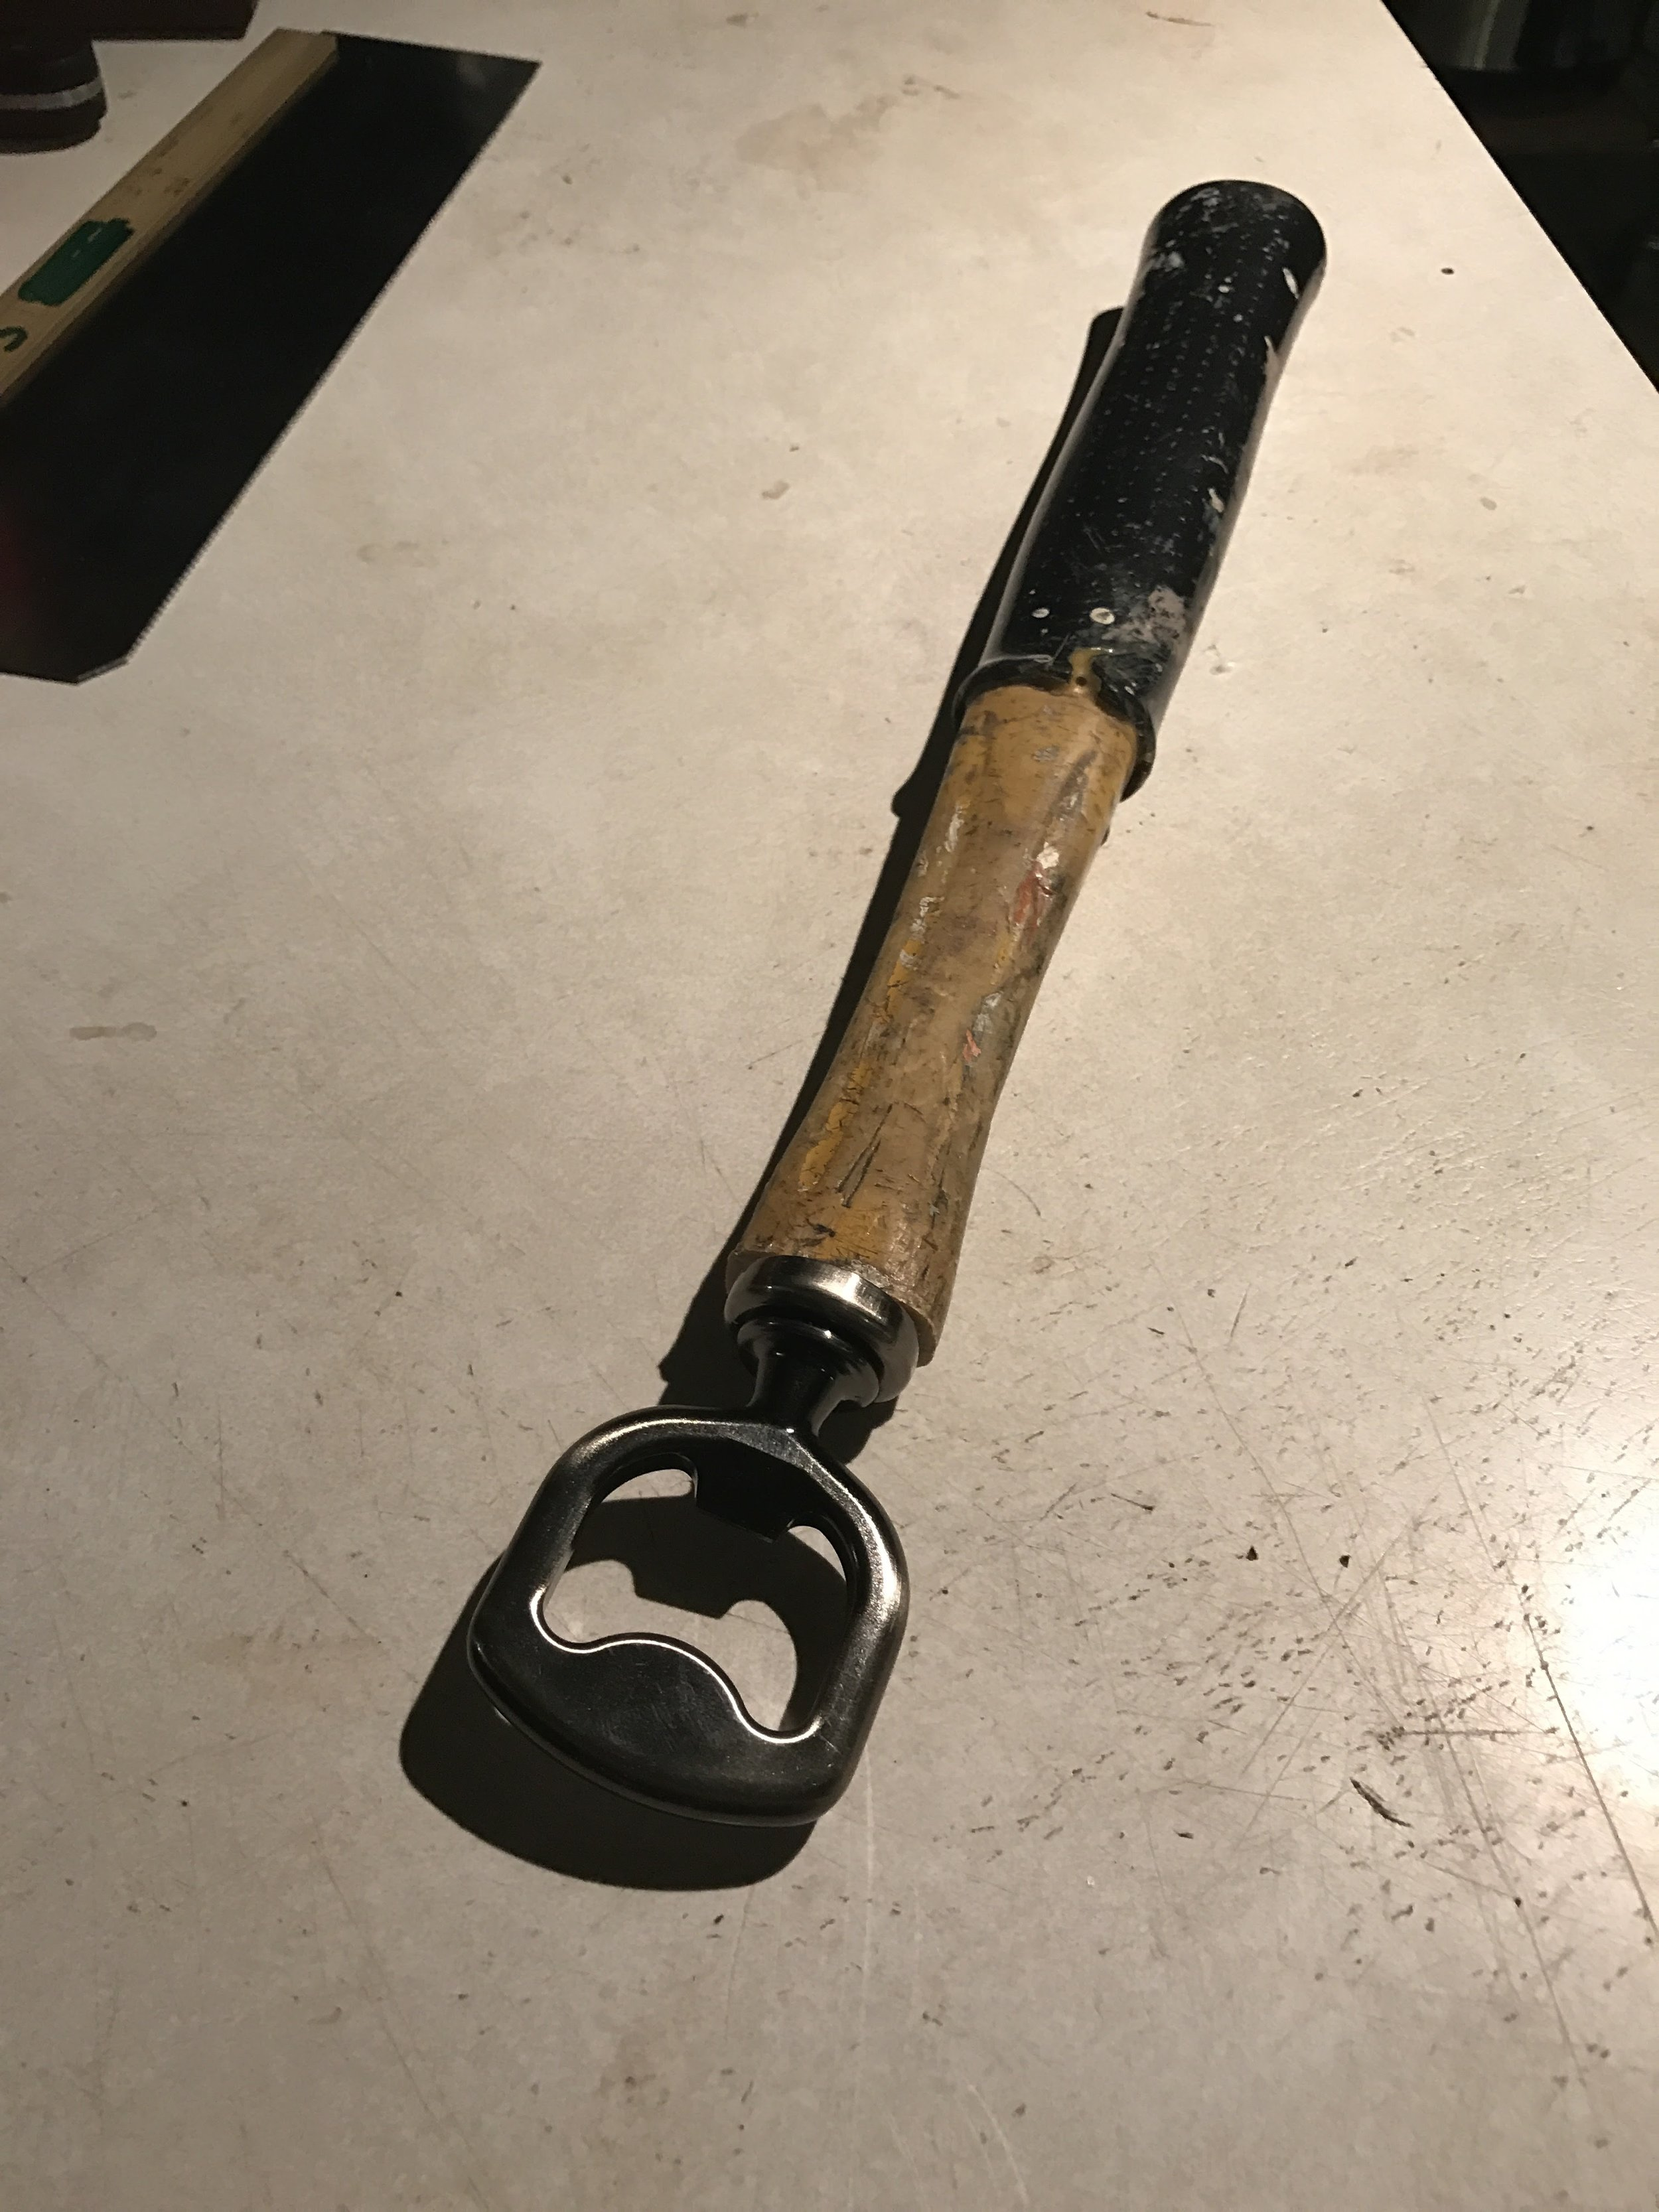 This year I made the old hammer handle into a beer bottle opener and gave it him as another Christmas present.